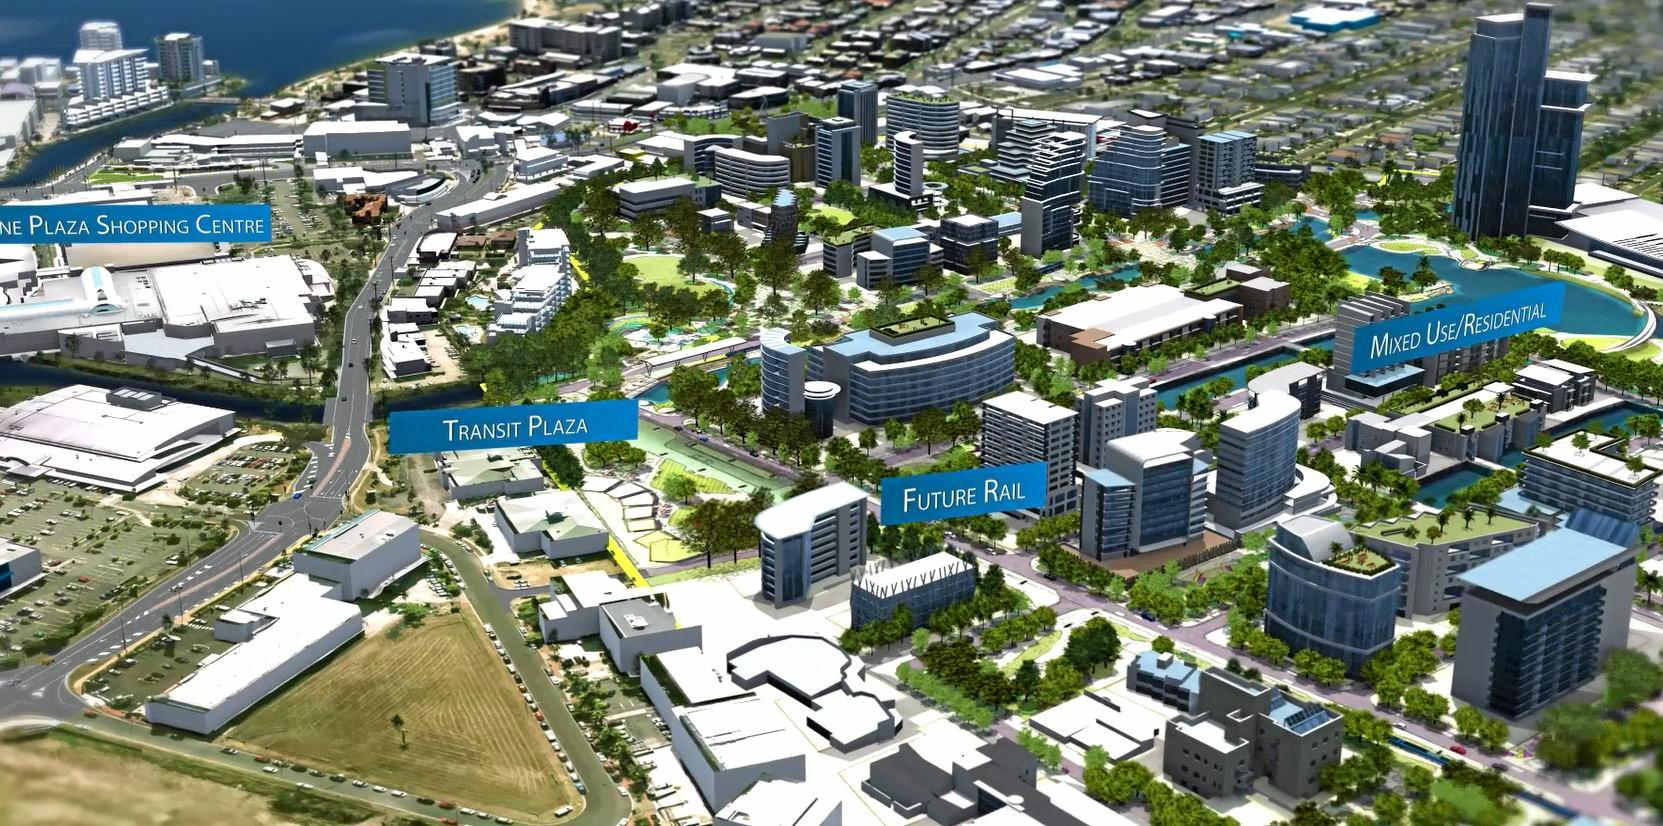 This impression pictures Sunshine Plaza on the left and Maroochy Blvd on the diagonal, with the yellow Maroochy CBD boundary line behind the Maroochy Homemaker Centre, which includes Harvey Norman. Image taken from SunCentral's flyover video showing its vision for the new Maroochydore CBD. June 23,2016.